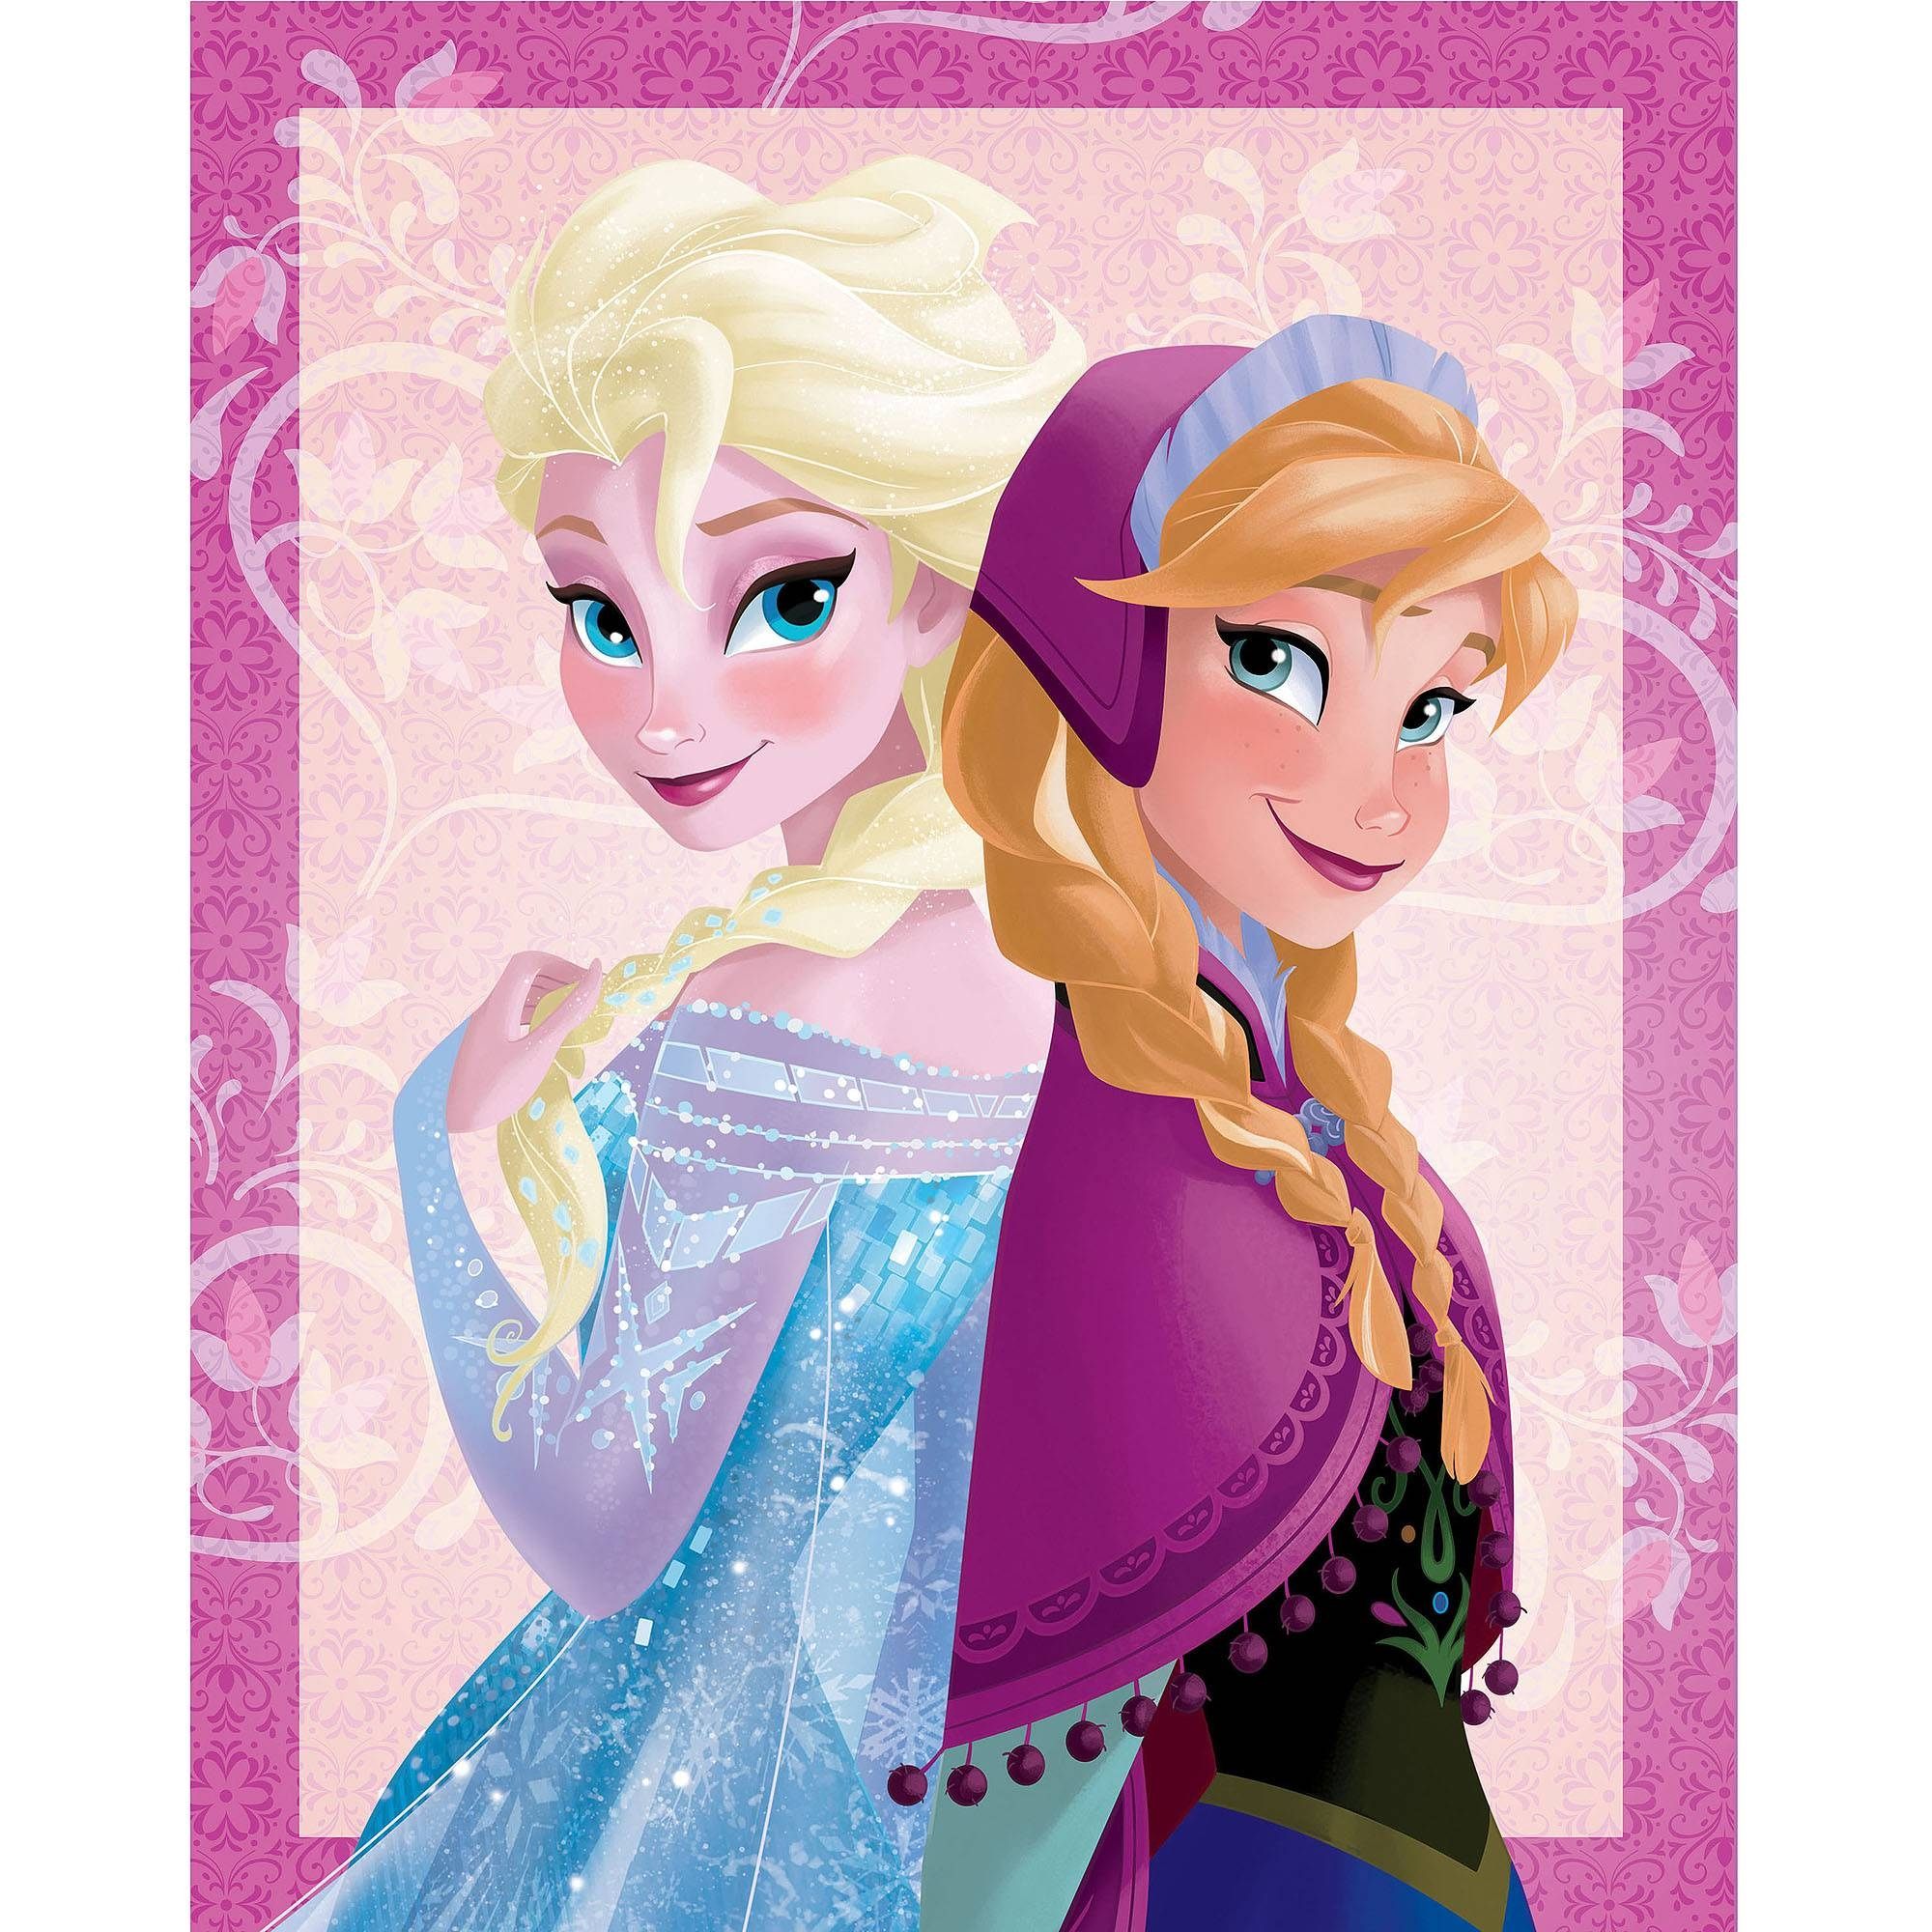 Extraordinary 60+ Disney Princess Canvas Wall Art Decorating Intended For Latest Disney Princess Framed Wall Art (Gallery 20 of 20)